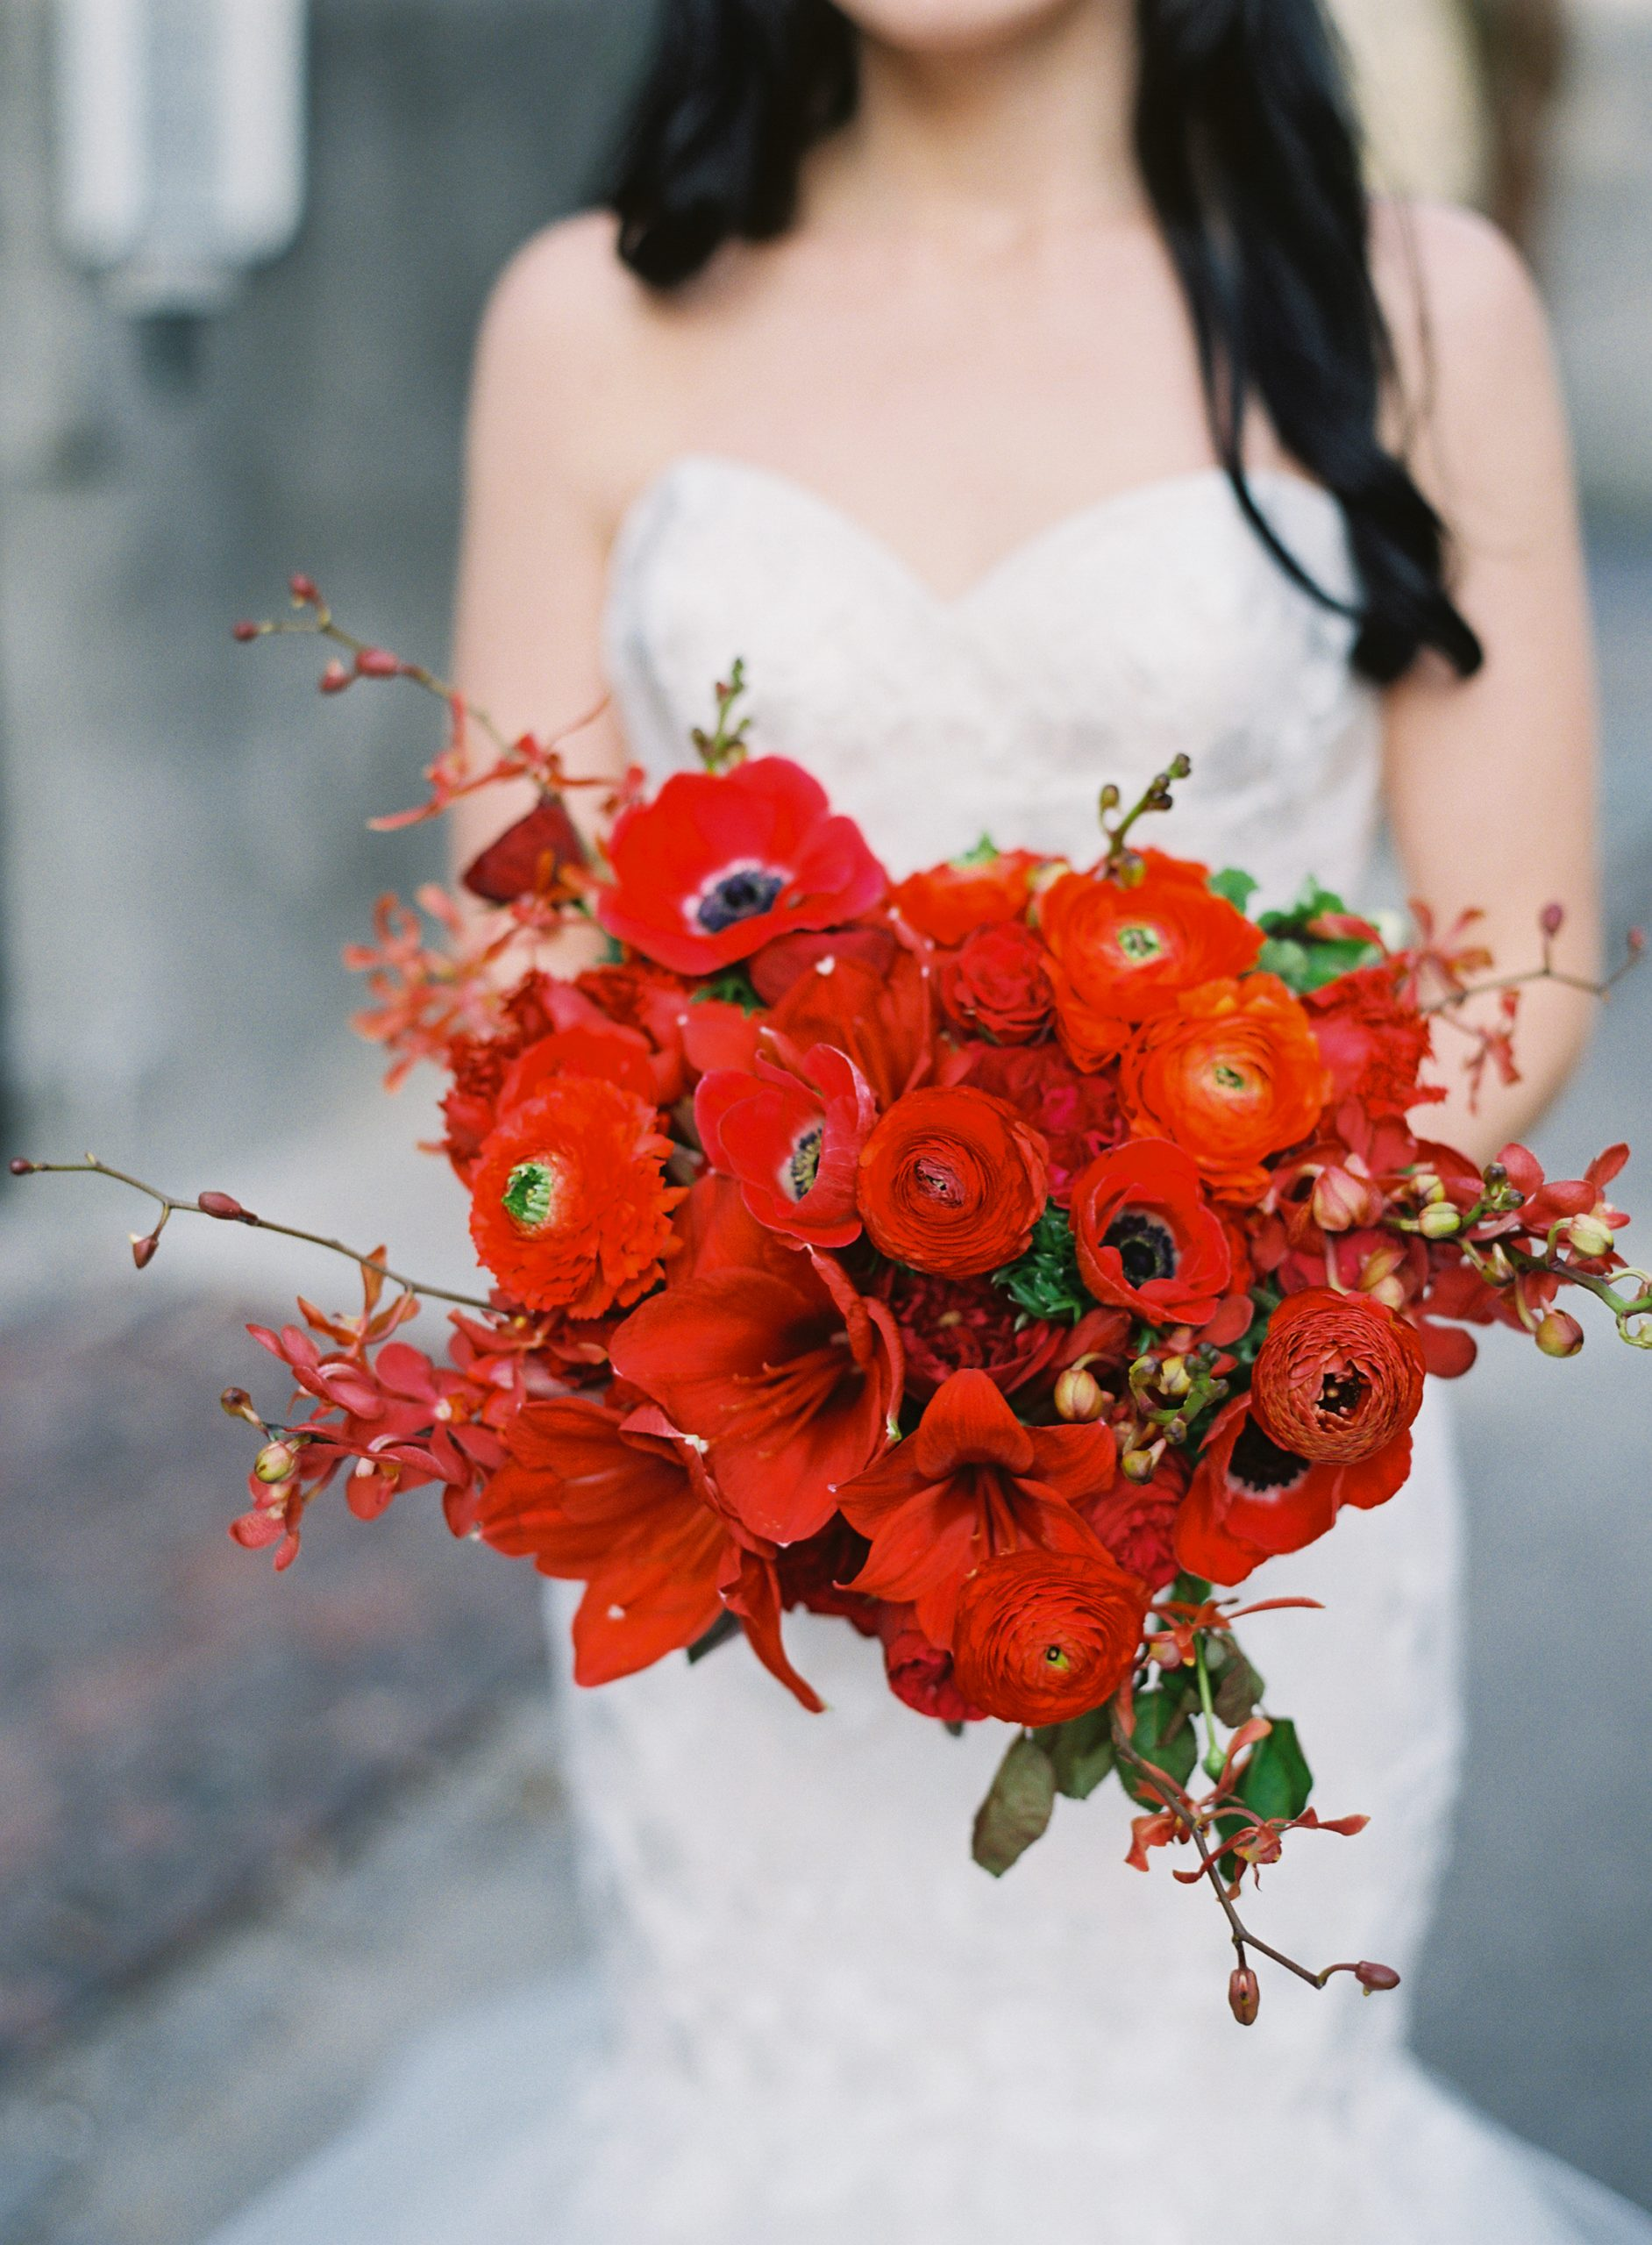 bride holding a red flower bouquet